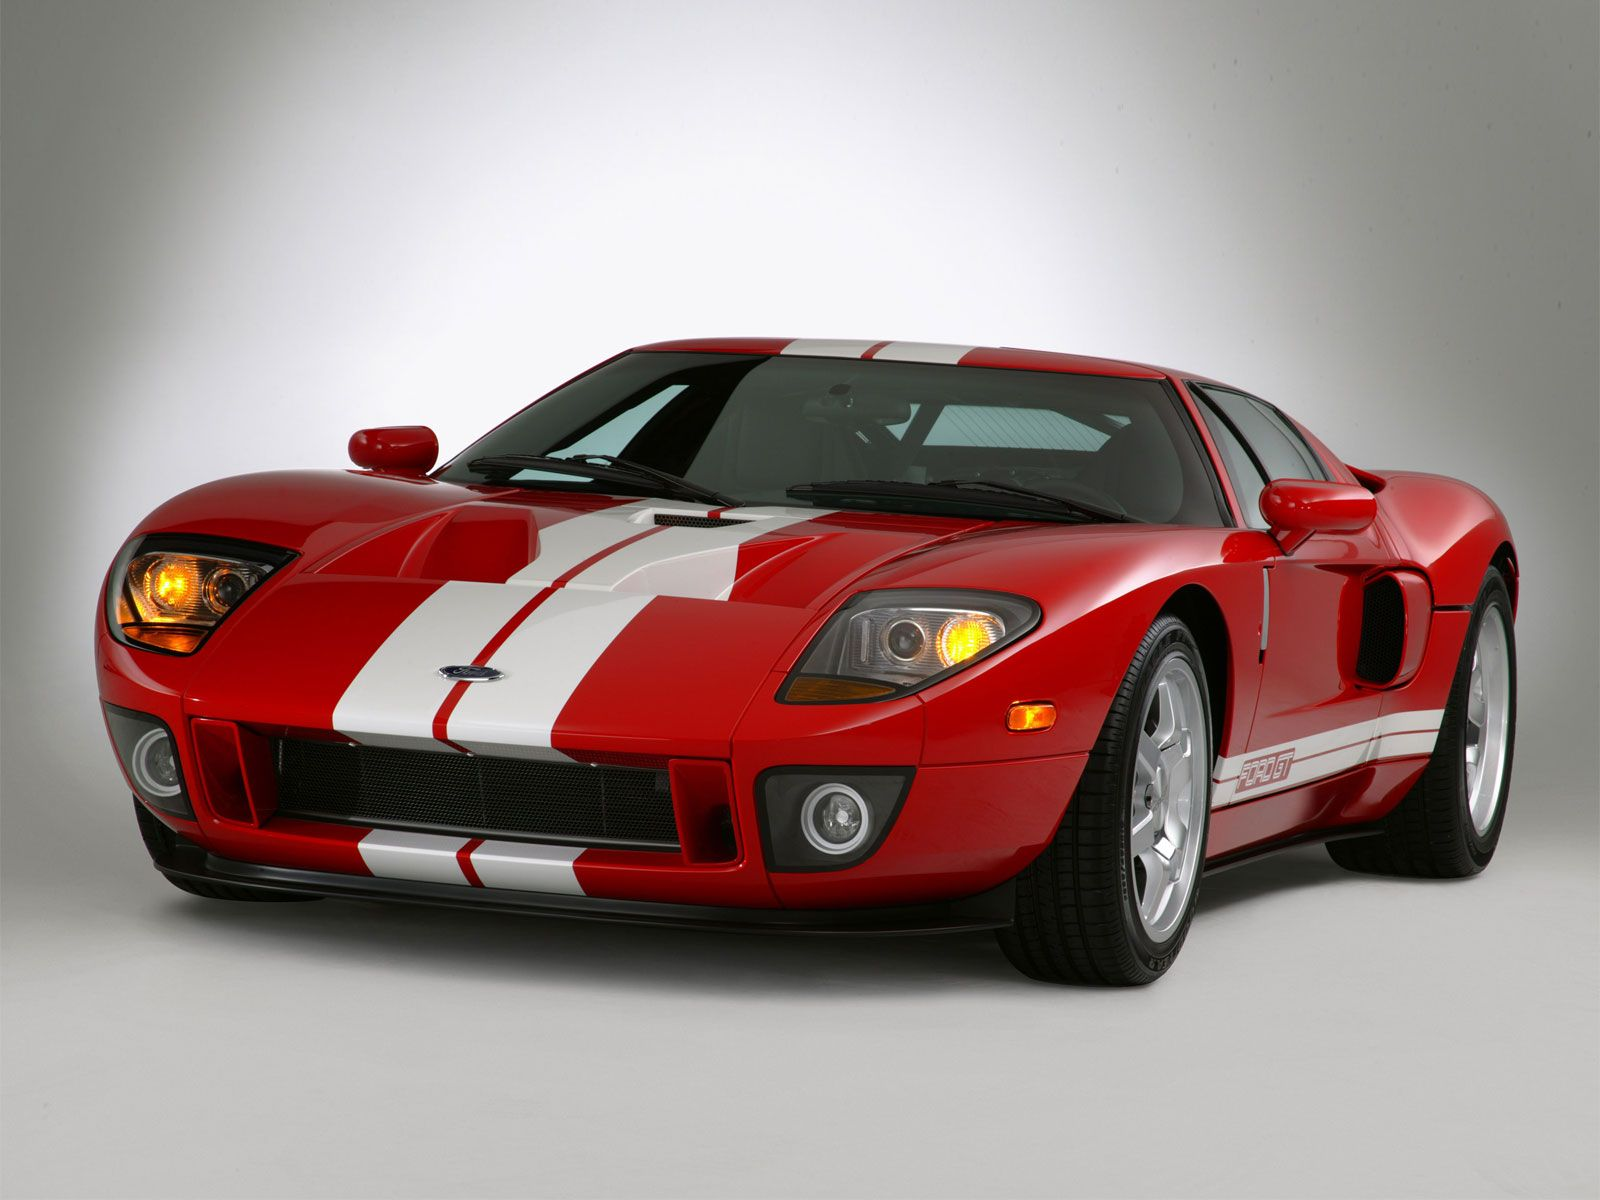 Ford Gt40 Red With White Stripes Pics Ford Gt40 Ford Gt Car Ford